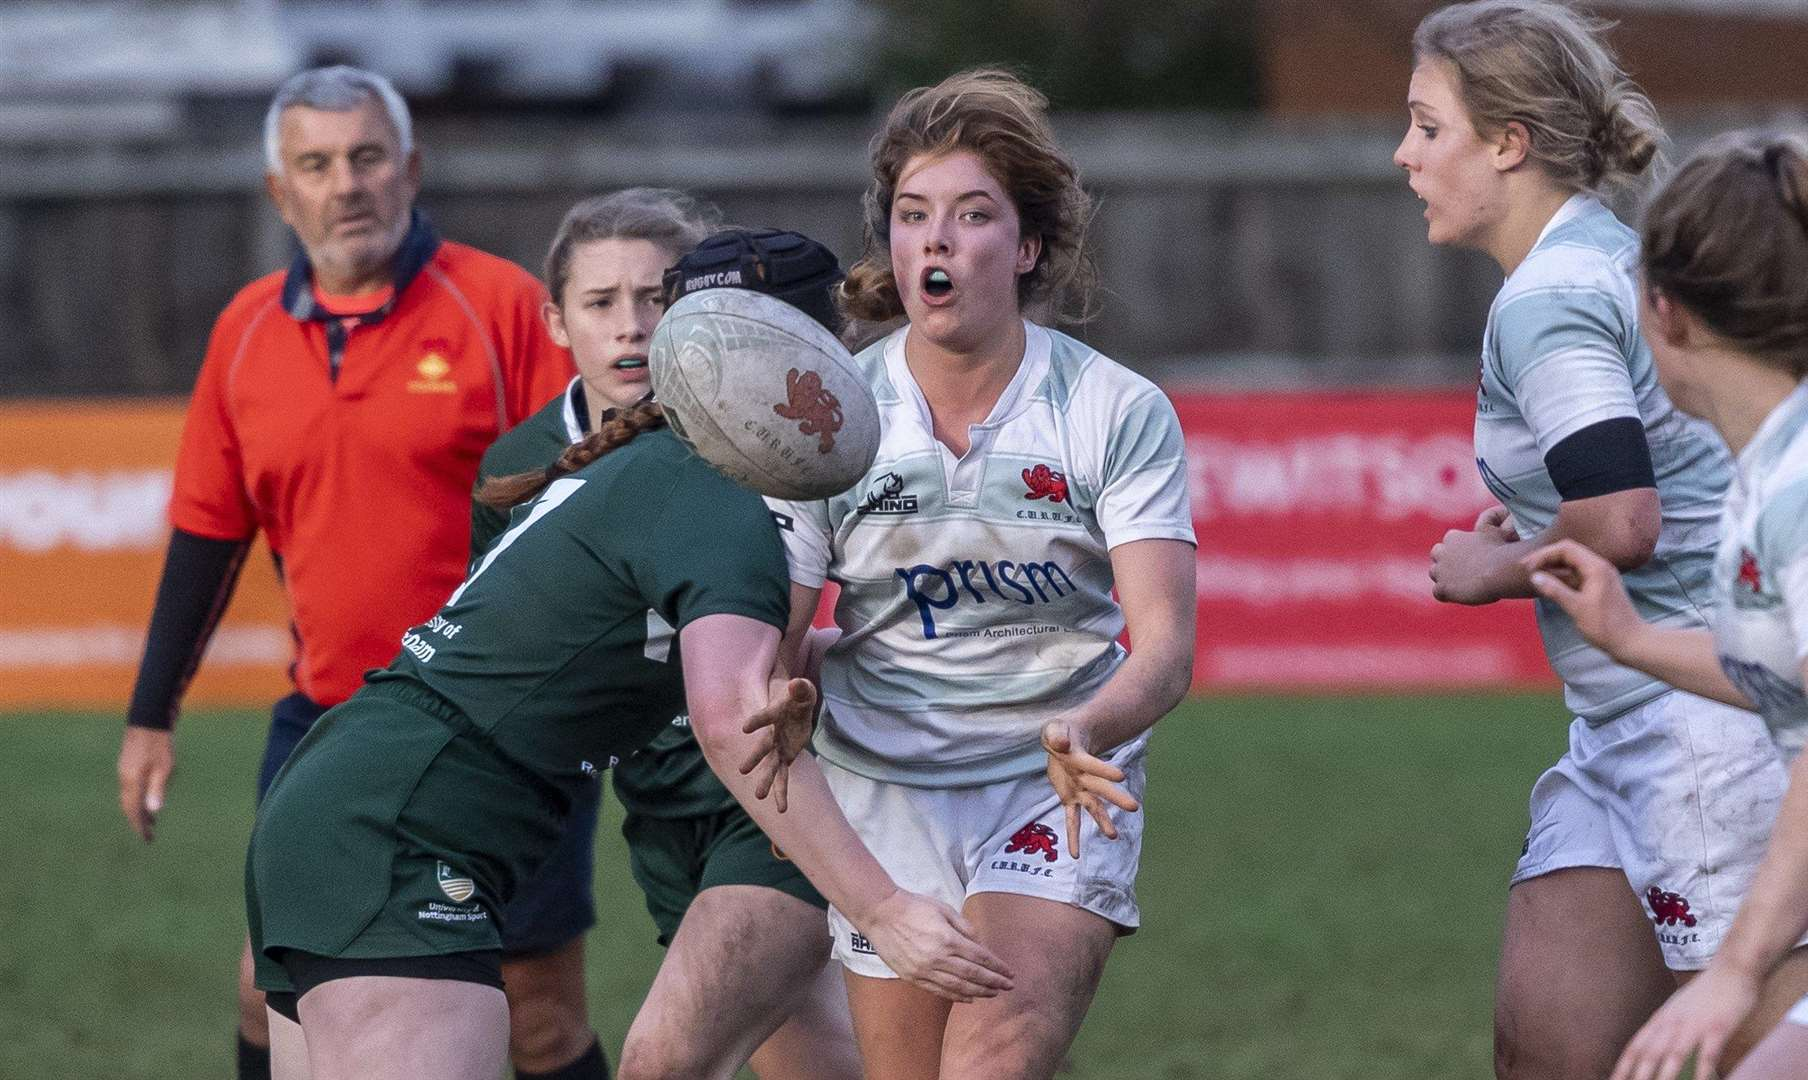 Cambridge University women v Nottingham, Cambridge University Rugby Union Football Club, Fiona Shuttleworth . Picture: Keith Heppell (5693154)